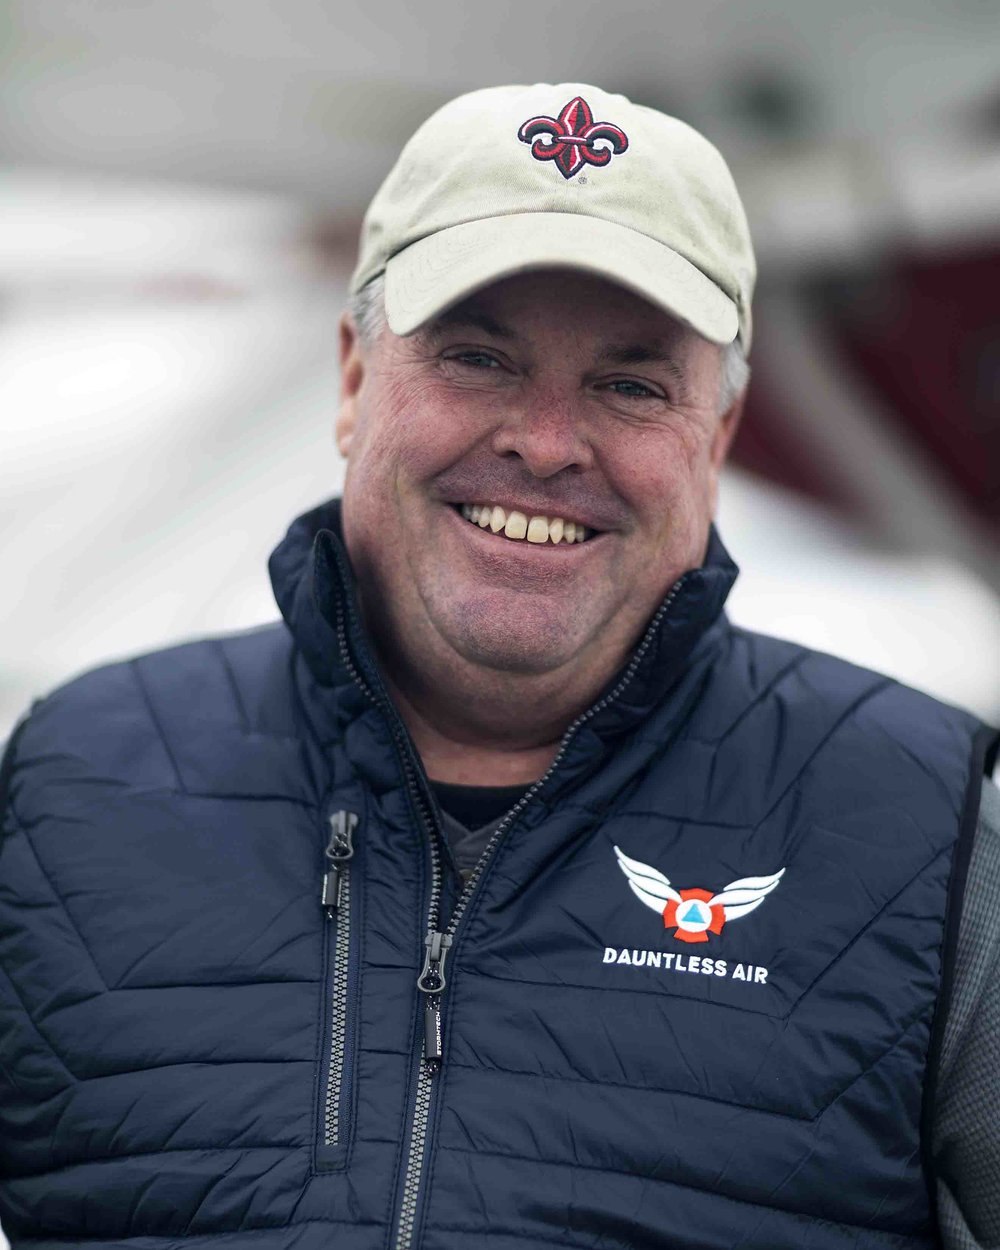 JESSE WEAVERDIRECTOR OF OPERATIONS & CHIEF PILOT  - As Director of Operations and Chief Pilot, Jesse is responsible for coordinating all firefighting operations for Dauntless Air, including managing all aspects of the piloting team from pilot hiring to aerial training to the implementation of safety requirements. Over the course of his 30-year aviation career, Jesse has spent 15 seasons fighting wildfires – including 14 seasons with Dauntless Air (previously, Aero Spray) and 12 seasons in a Fire Boss. Internationally, Jesse spent two seasons flying for Pay's Air Service in Australia, where he helped start the Pay's Fire Boss program by flying operational missions and training pilots. Jesse has close to 15,000 hours of flight time, the majority of which has been spent in Air Tractor aircraft like the Fire Boss. In addition to firefighting aircraft, Jesse has flown corporate and agricultural aircraft, as well as warbirds.